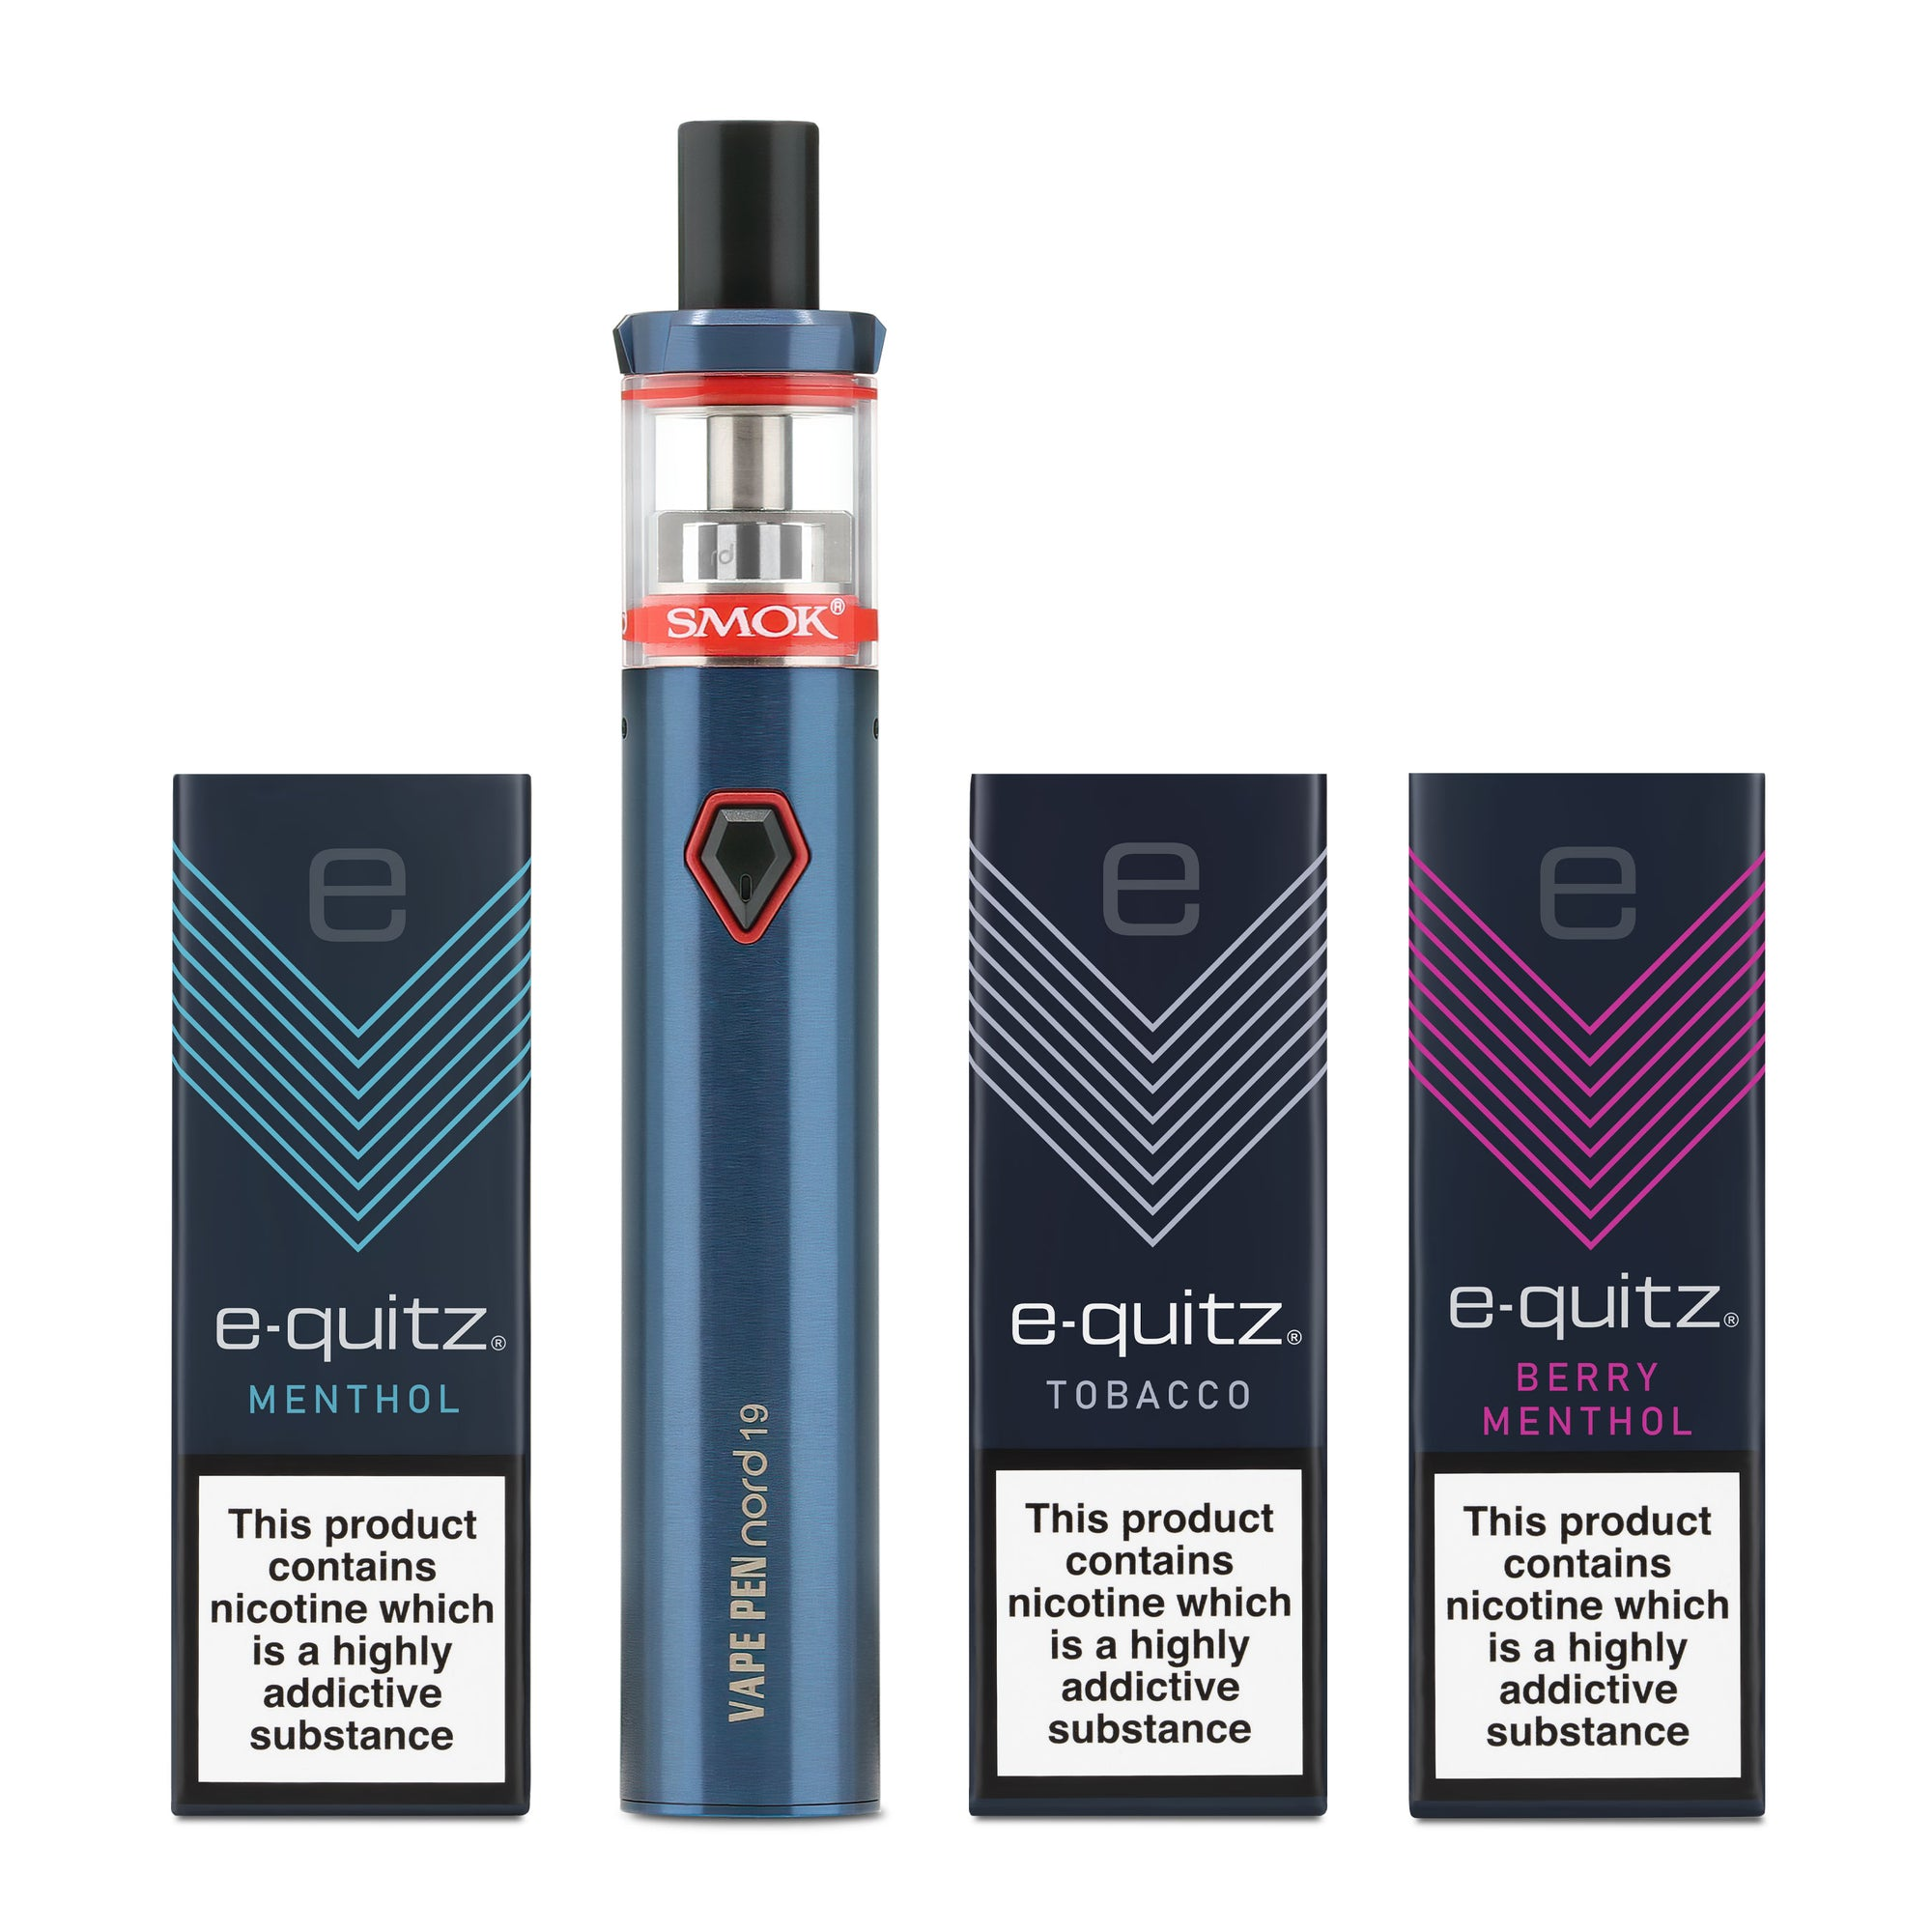 3 free e-liquid and smok vape pen in blue